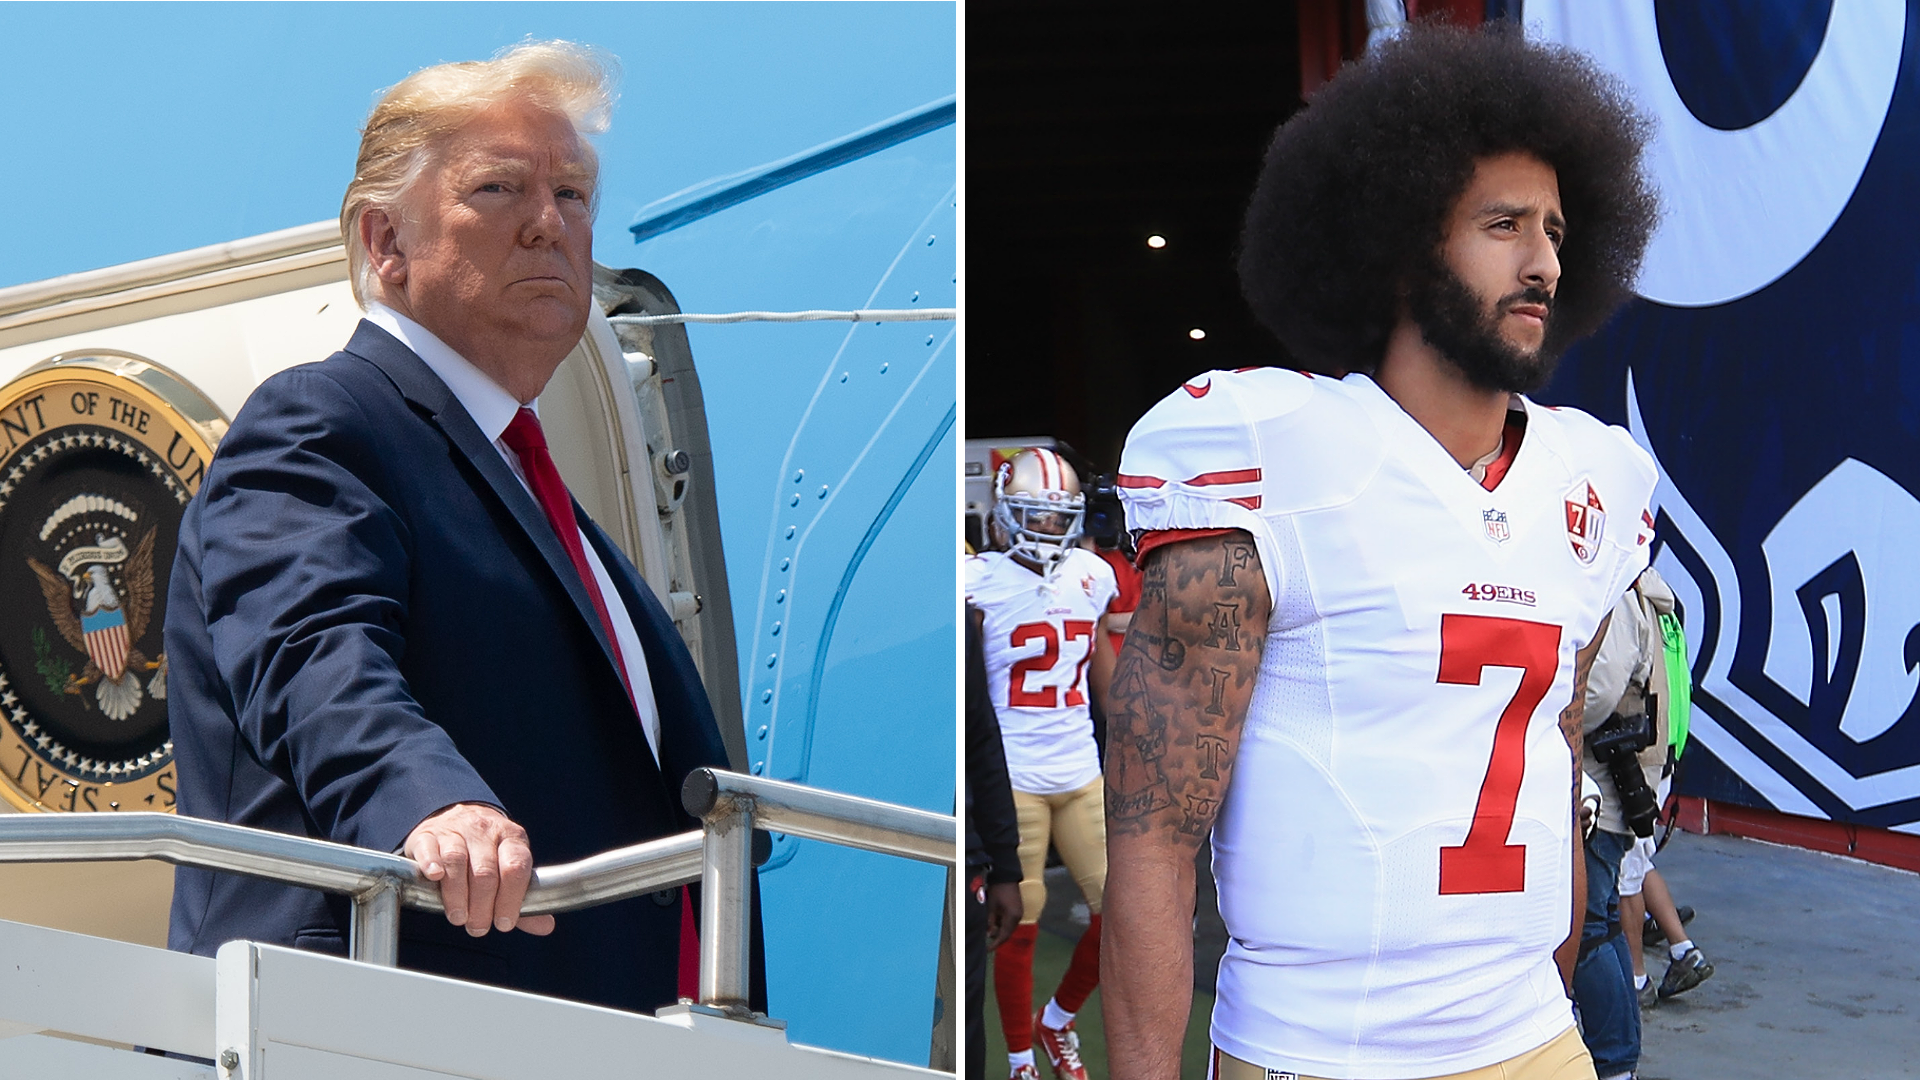 Fact-checking Donald Trump's comments about Colin Kaepernick's NFL career 1